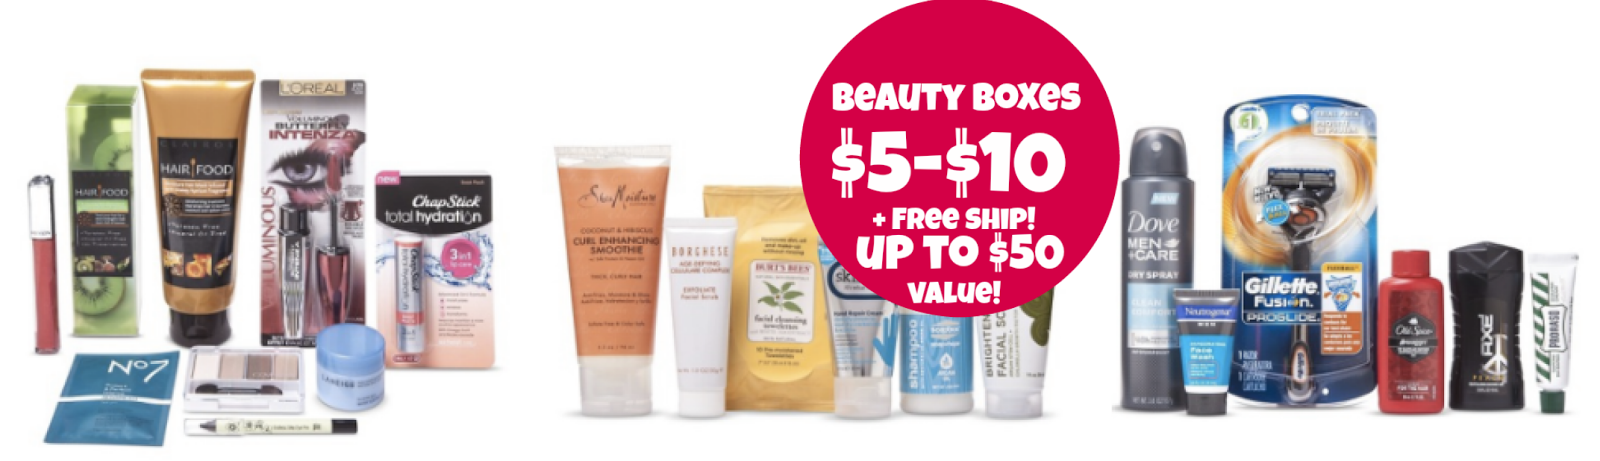 http://www.thebinderladies.com/2014/12/hot-target-beauty-boxes-naturals-for.html#.VHyBVIfduyM